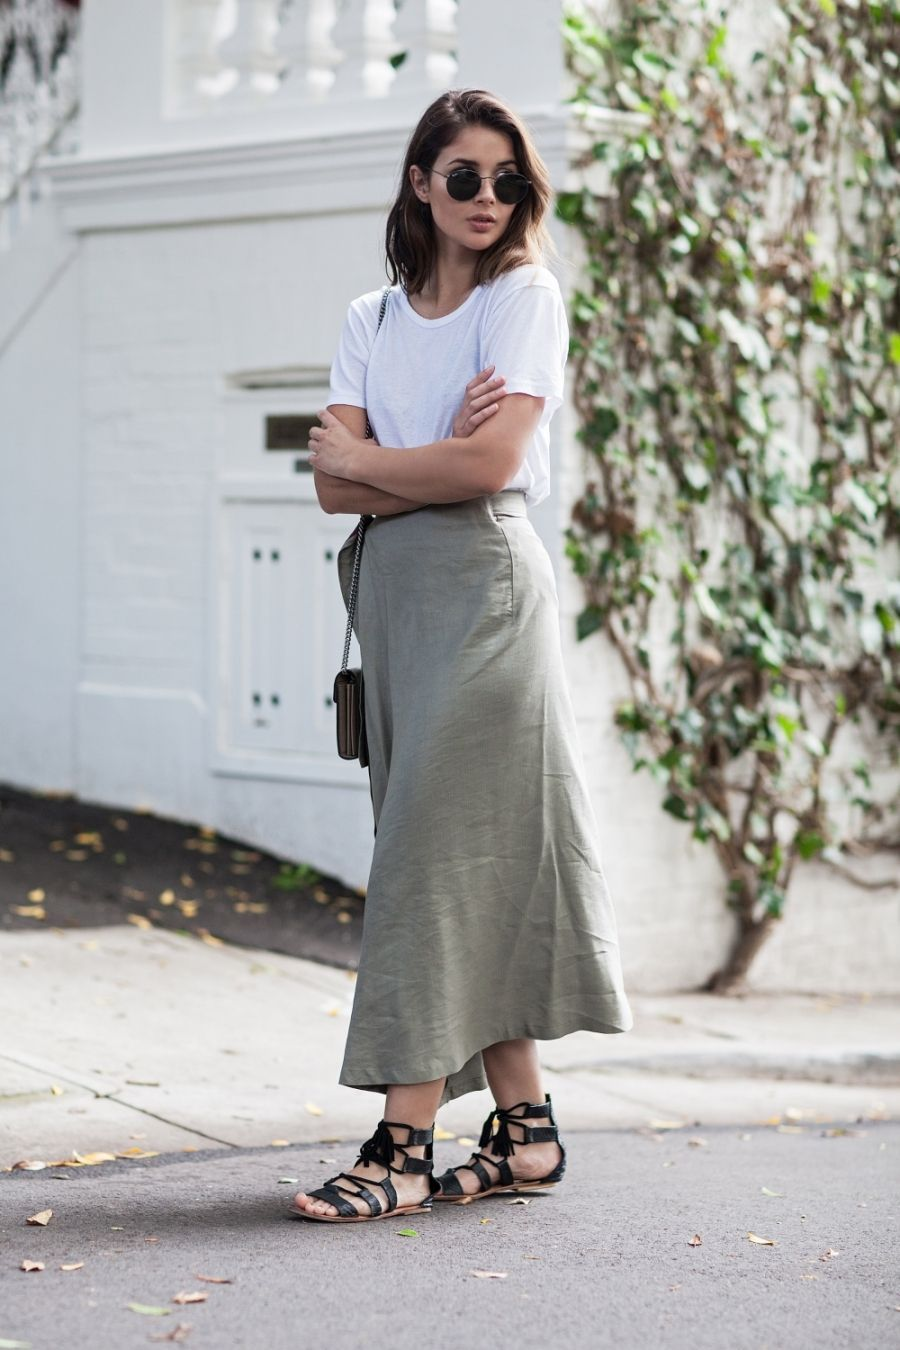 15 Ways To Style Your White T-Shirt